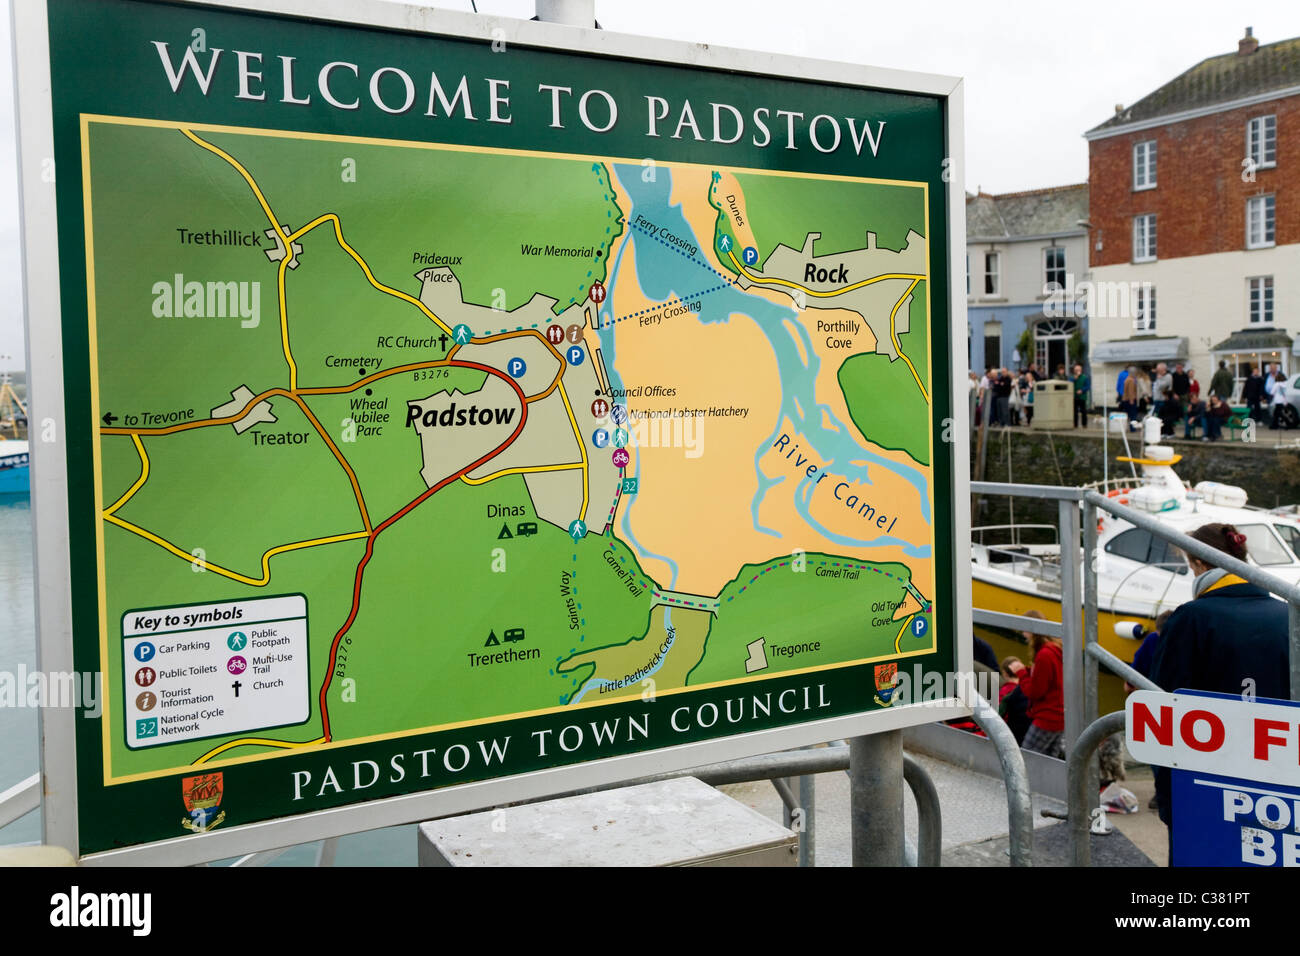 Tourist information street road map plan maps plans sign tourist information street road map plan maps plans sign signs by the harbour at padstow in cornwall uk biocorpaavc Choice Image